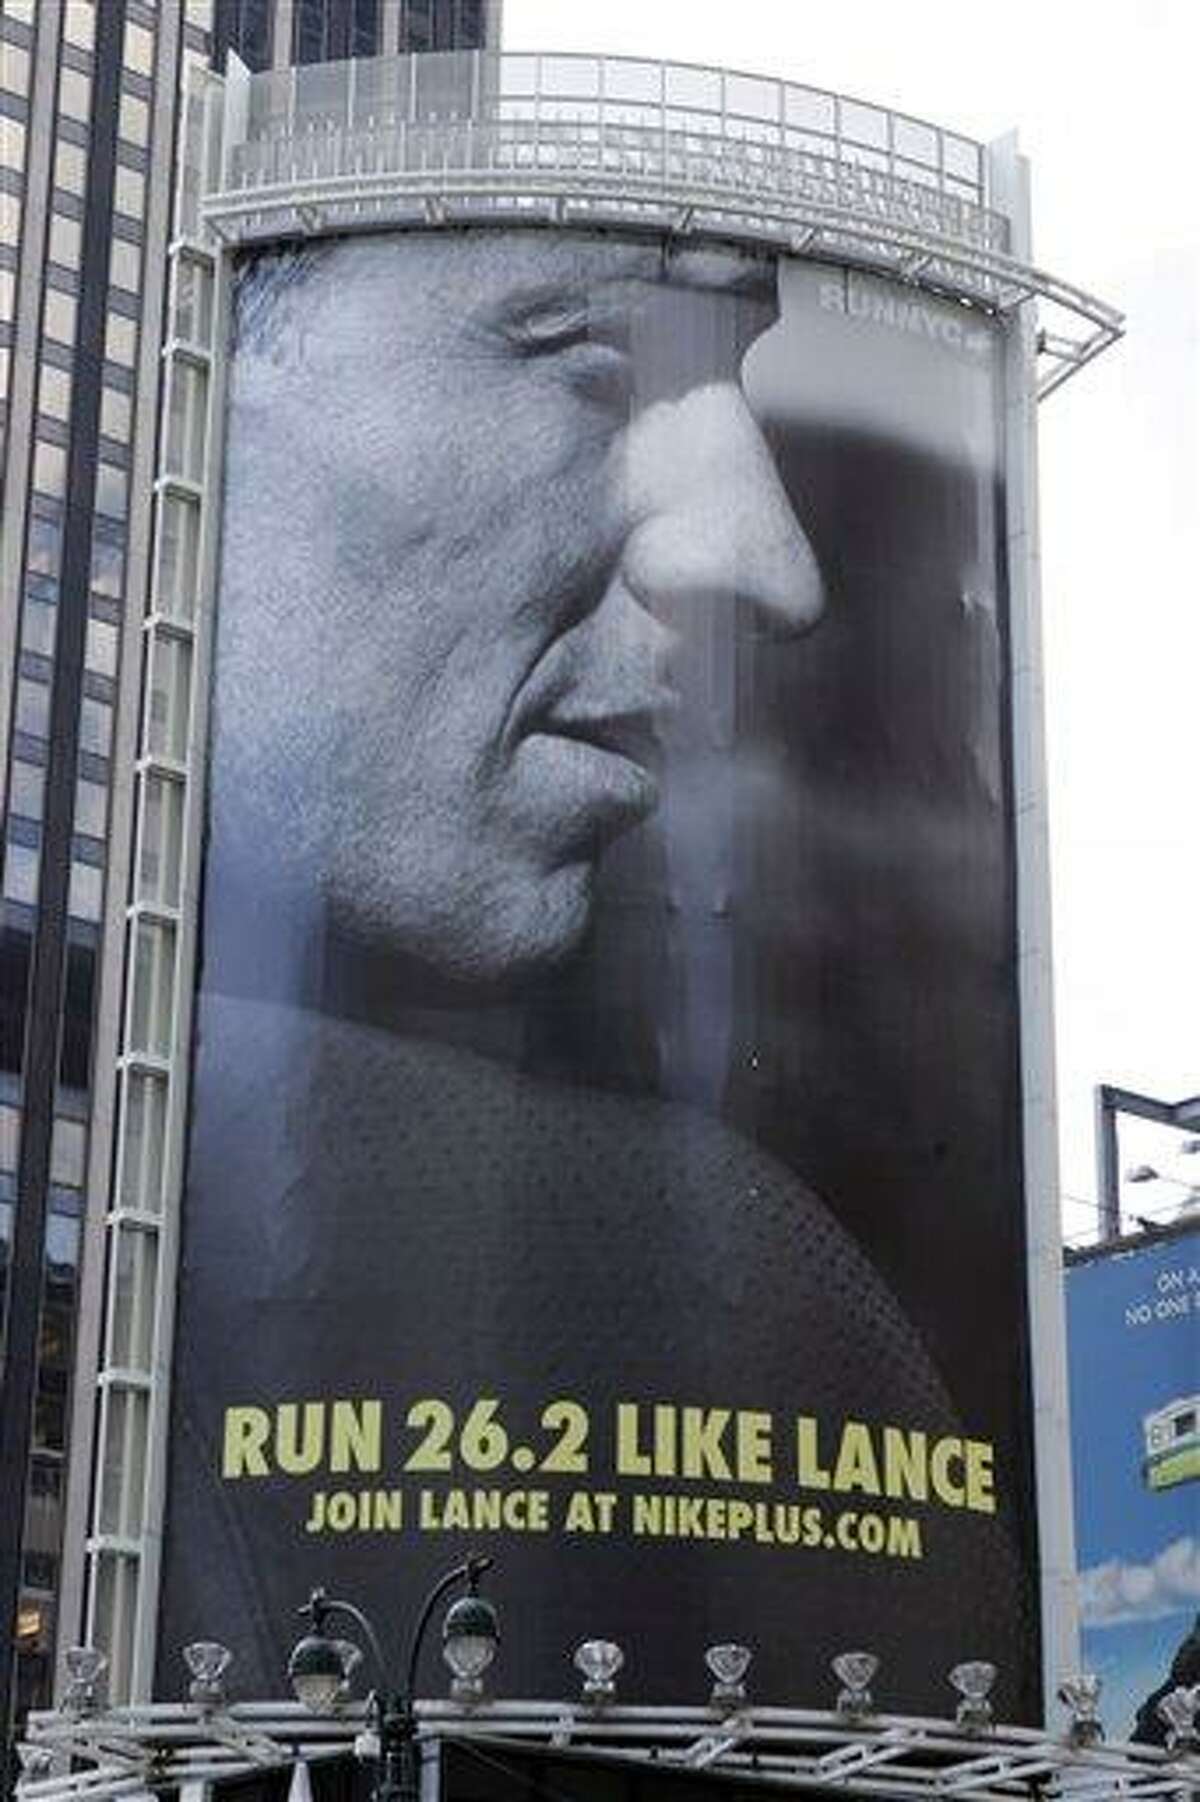 """In an 80-foot billboard at 34th Street and 7th Avenue in Manhattan, Lance Armstrong and Nike challenge New Yorkers to """"Run Like Lance"""" in a 2006 file photo. Nike said Wednesday that it is severing ties with Armstrong, citing insurmountable evidence that the cyclist participated in doping and misled the company for more than a decade. Associated Press"""